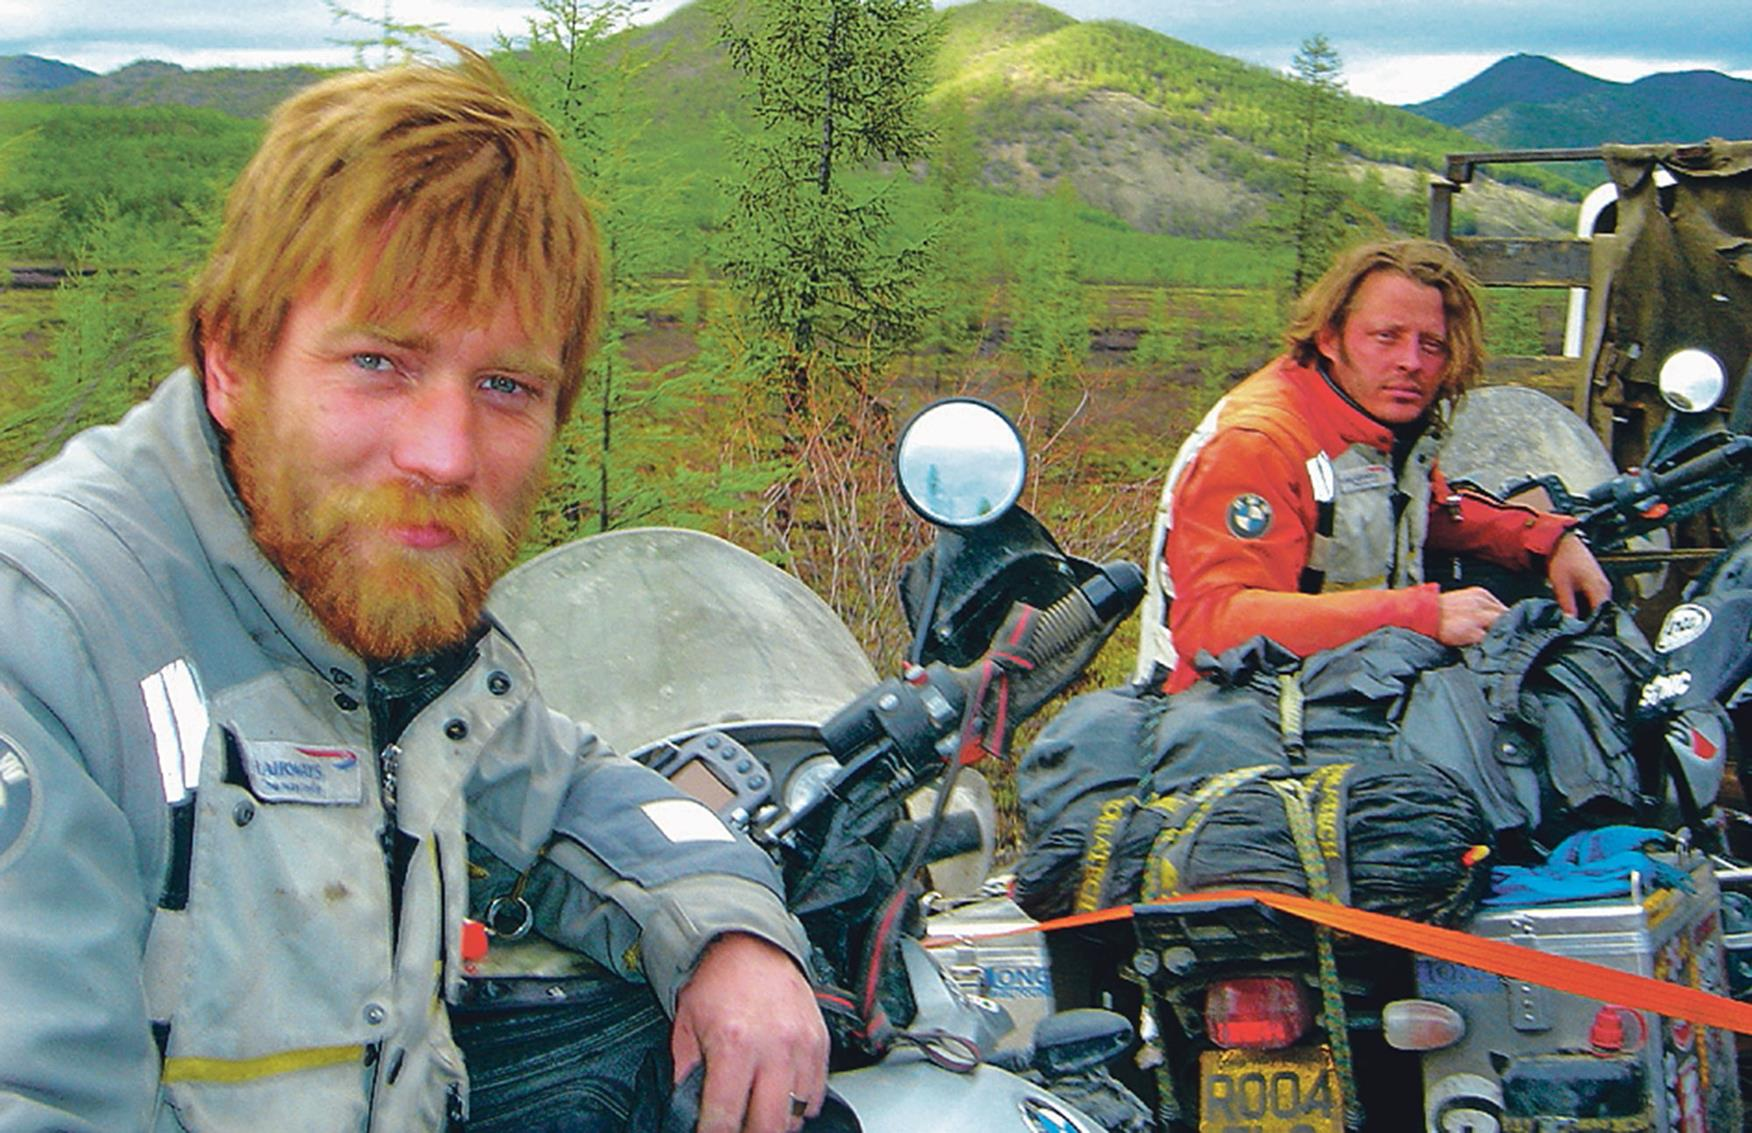 Ewan McGregor and Charley Boorman's Long Way Round